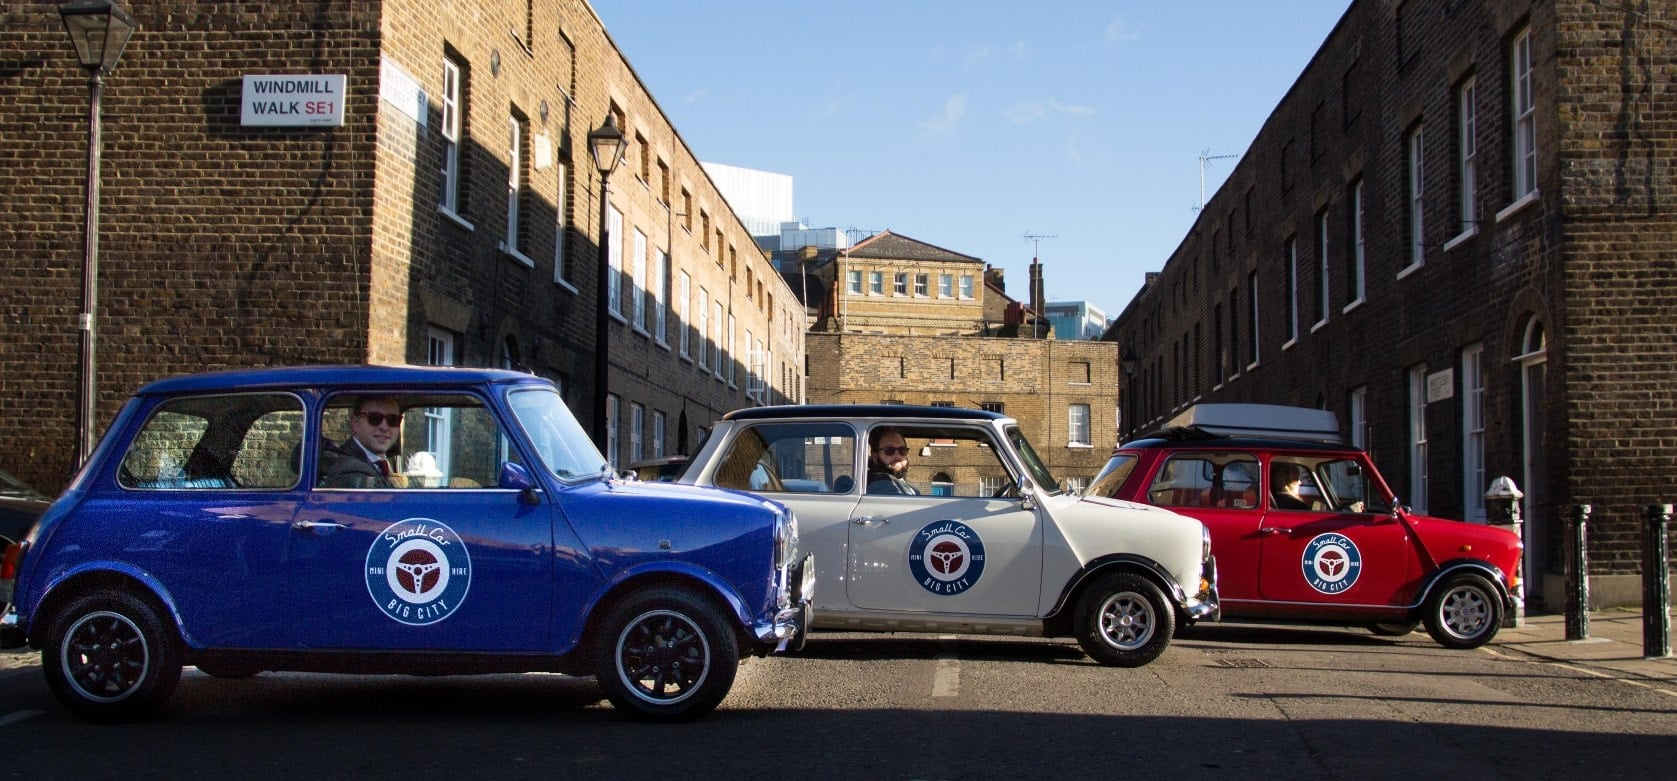 Harry Potter Film Locations Tour in a Mini Cooper-1